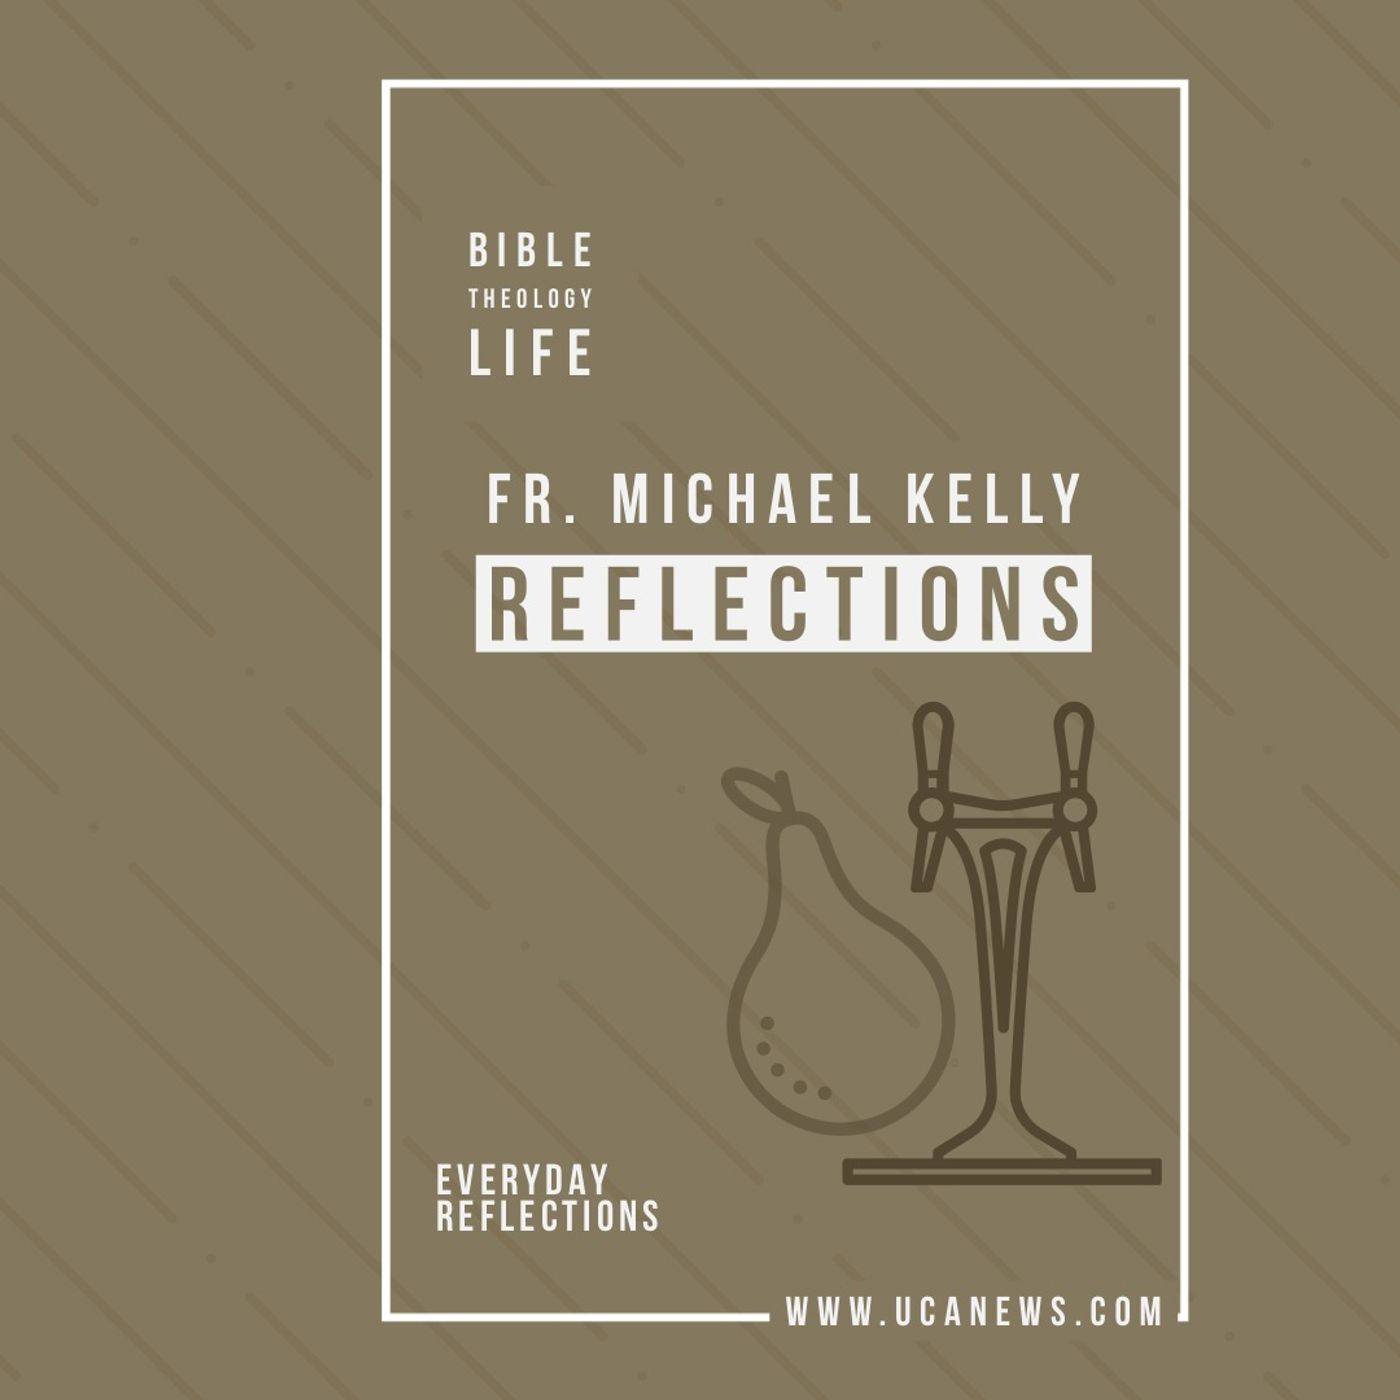 Reflections with Fr. Michael Kelly - Tuesday 13 Apr, 2021